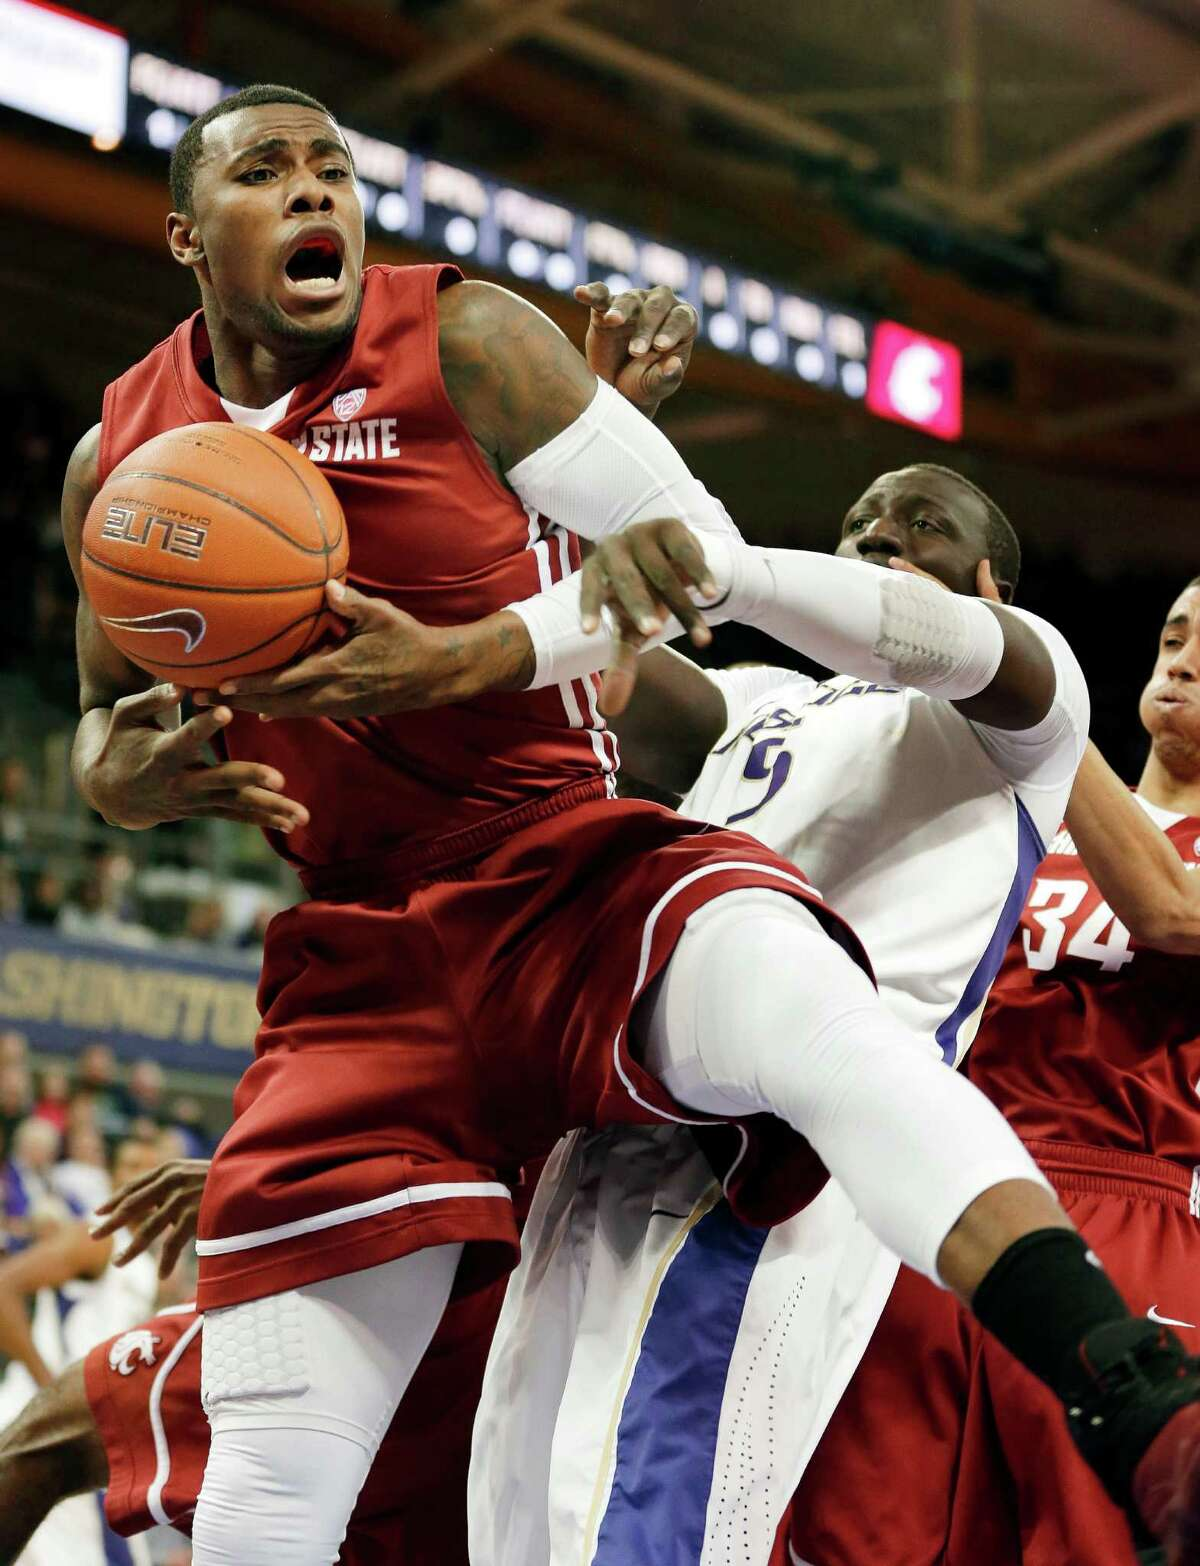 Washington State's D.J. Shelton, left, grabs a rebound over Washington's Aziz N'Diaye in the first half of an NCAA college basketball game on Sunday, March 3, 2013, in Seattle.